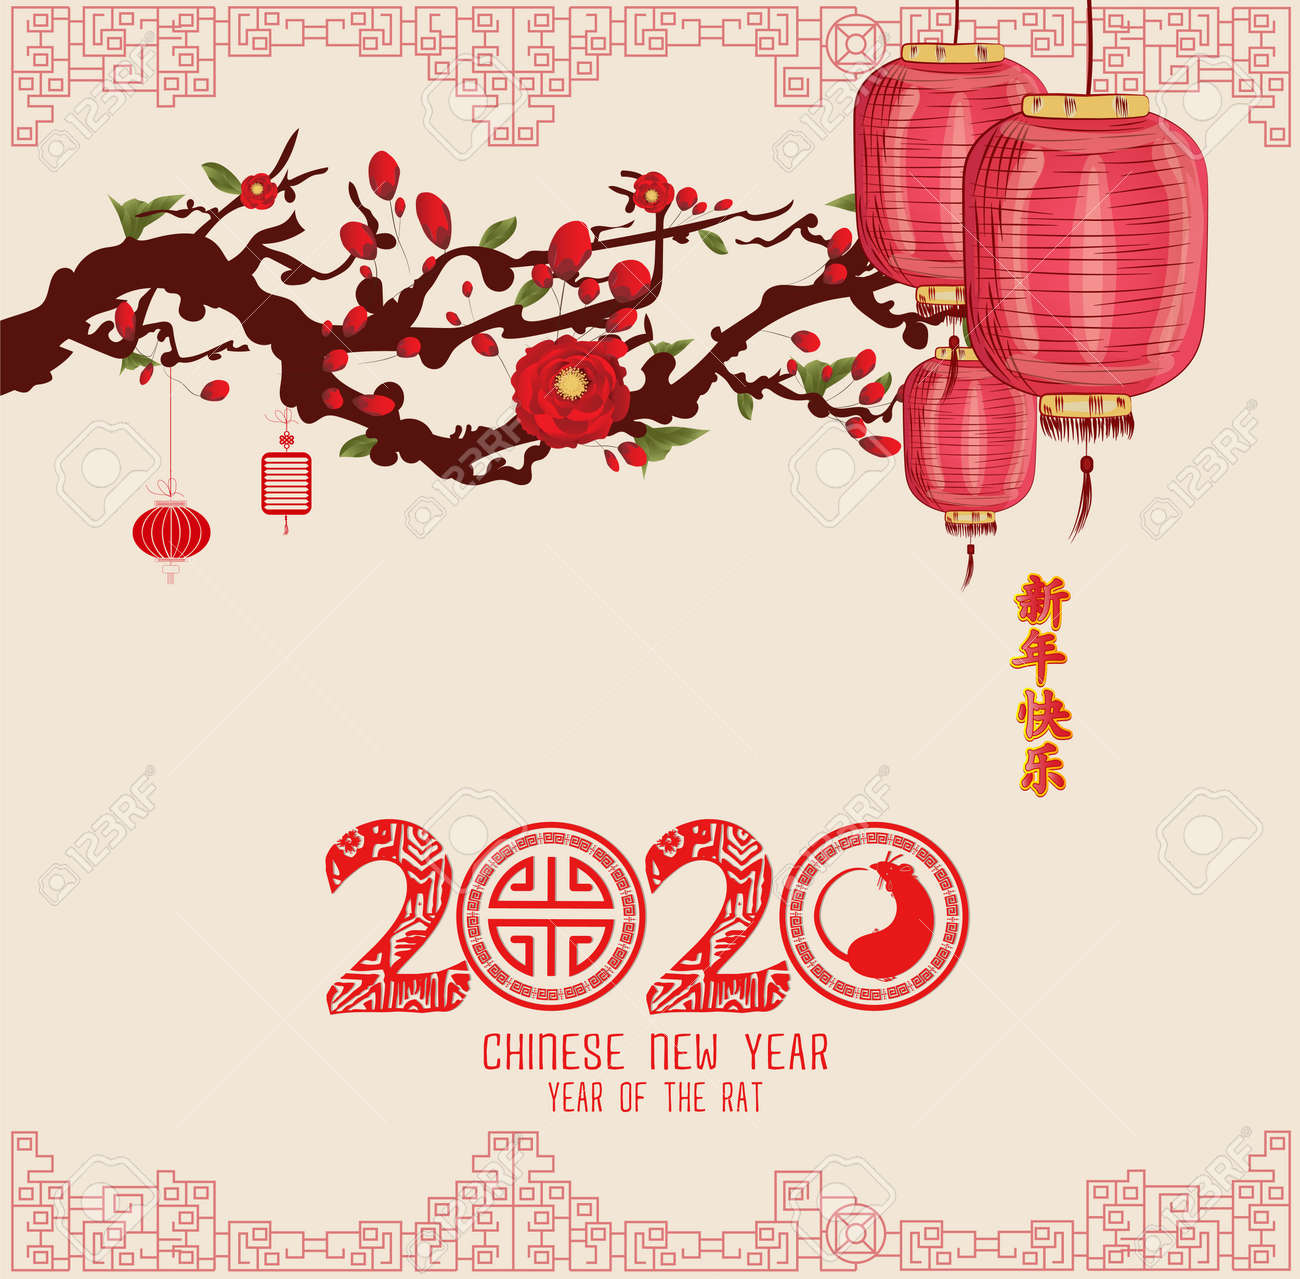 Chinese Moon Festival 2020.Happy Chinese New Year 2020 Year Of The Rat Lantern And Cherry